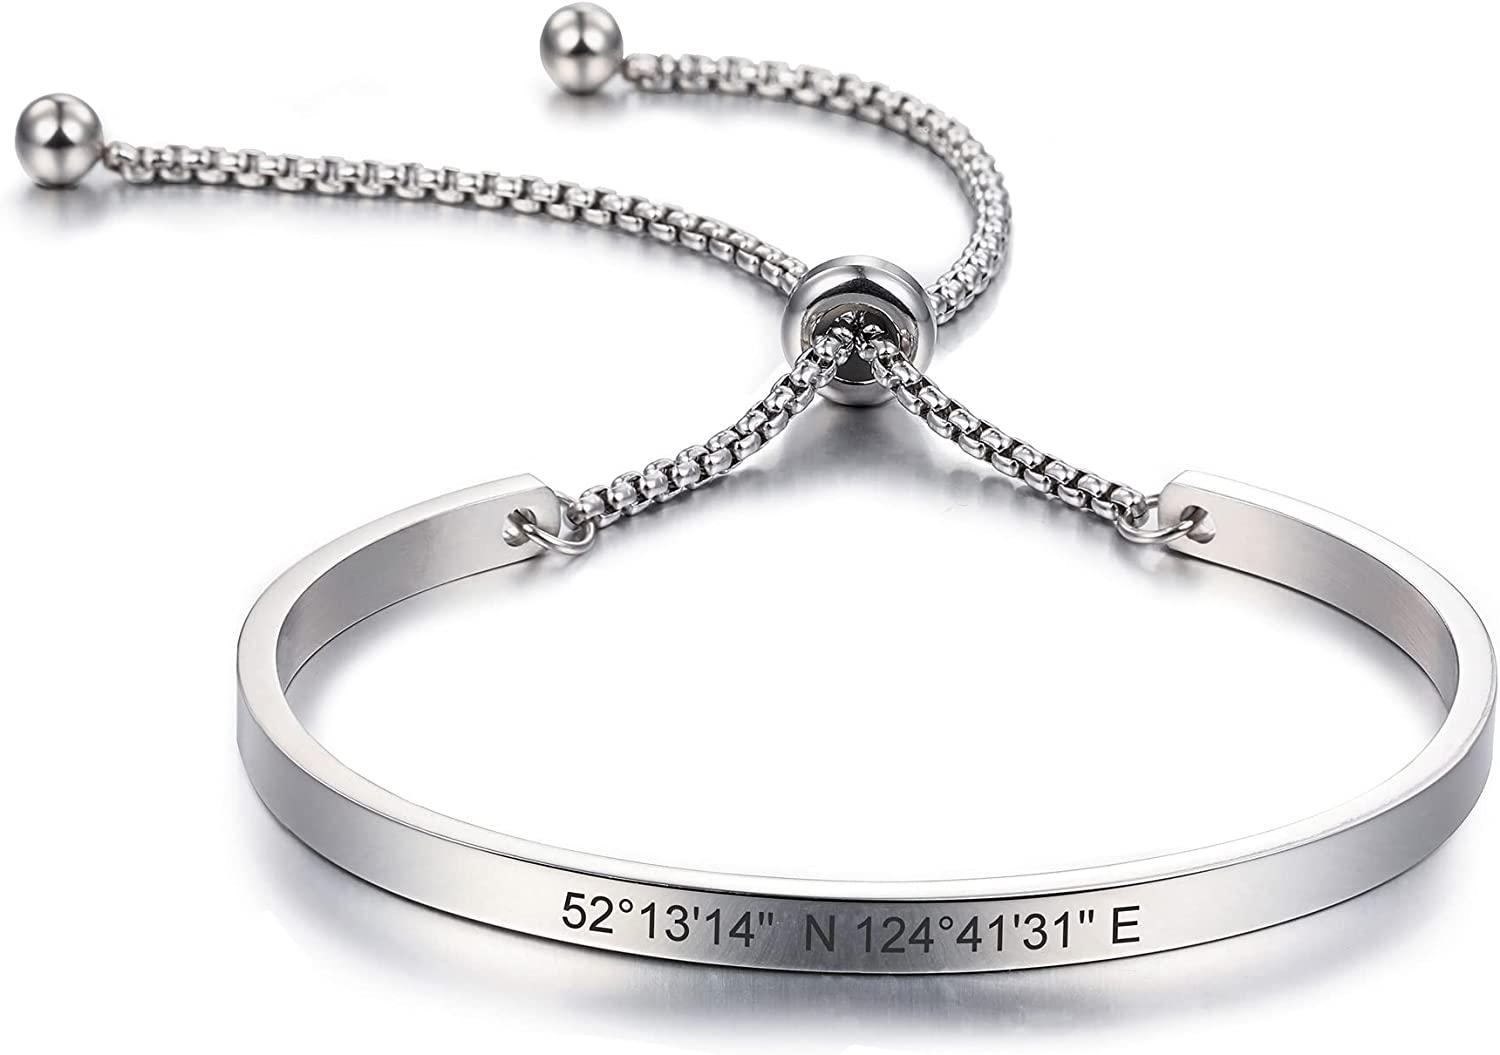 MeMeDIY Personalized Bracelet Engraving ID Name Max 68% Challenge the lowest price OFF C Identification